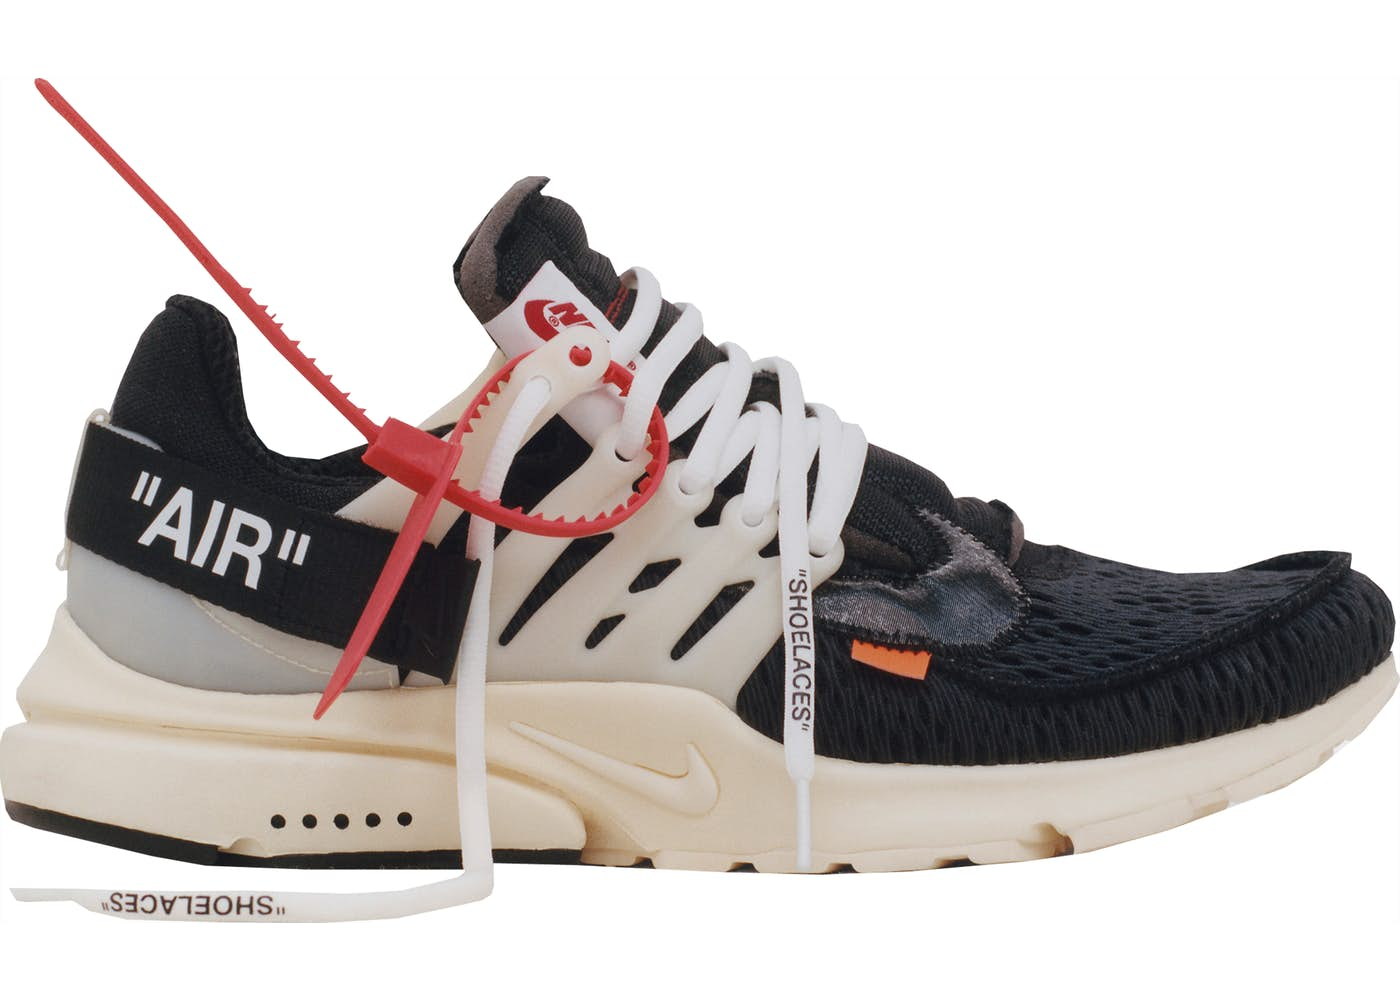 740f6d8fa13dd Where to buy the Oval Off-White